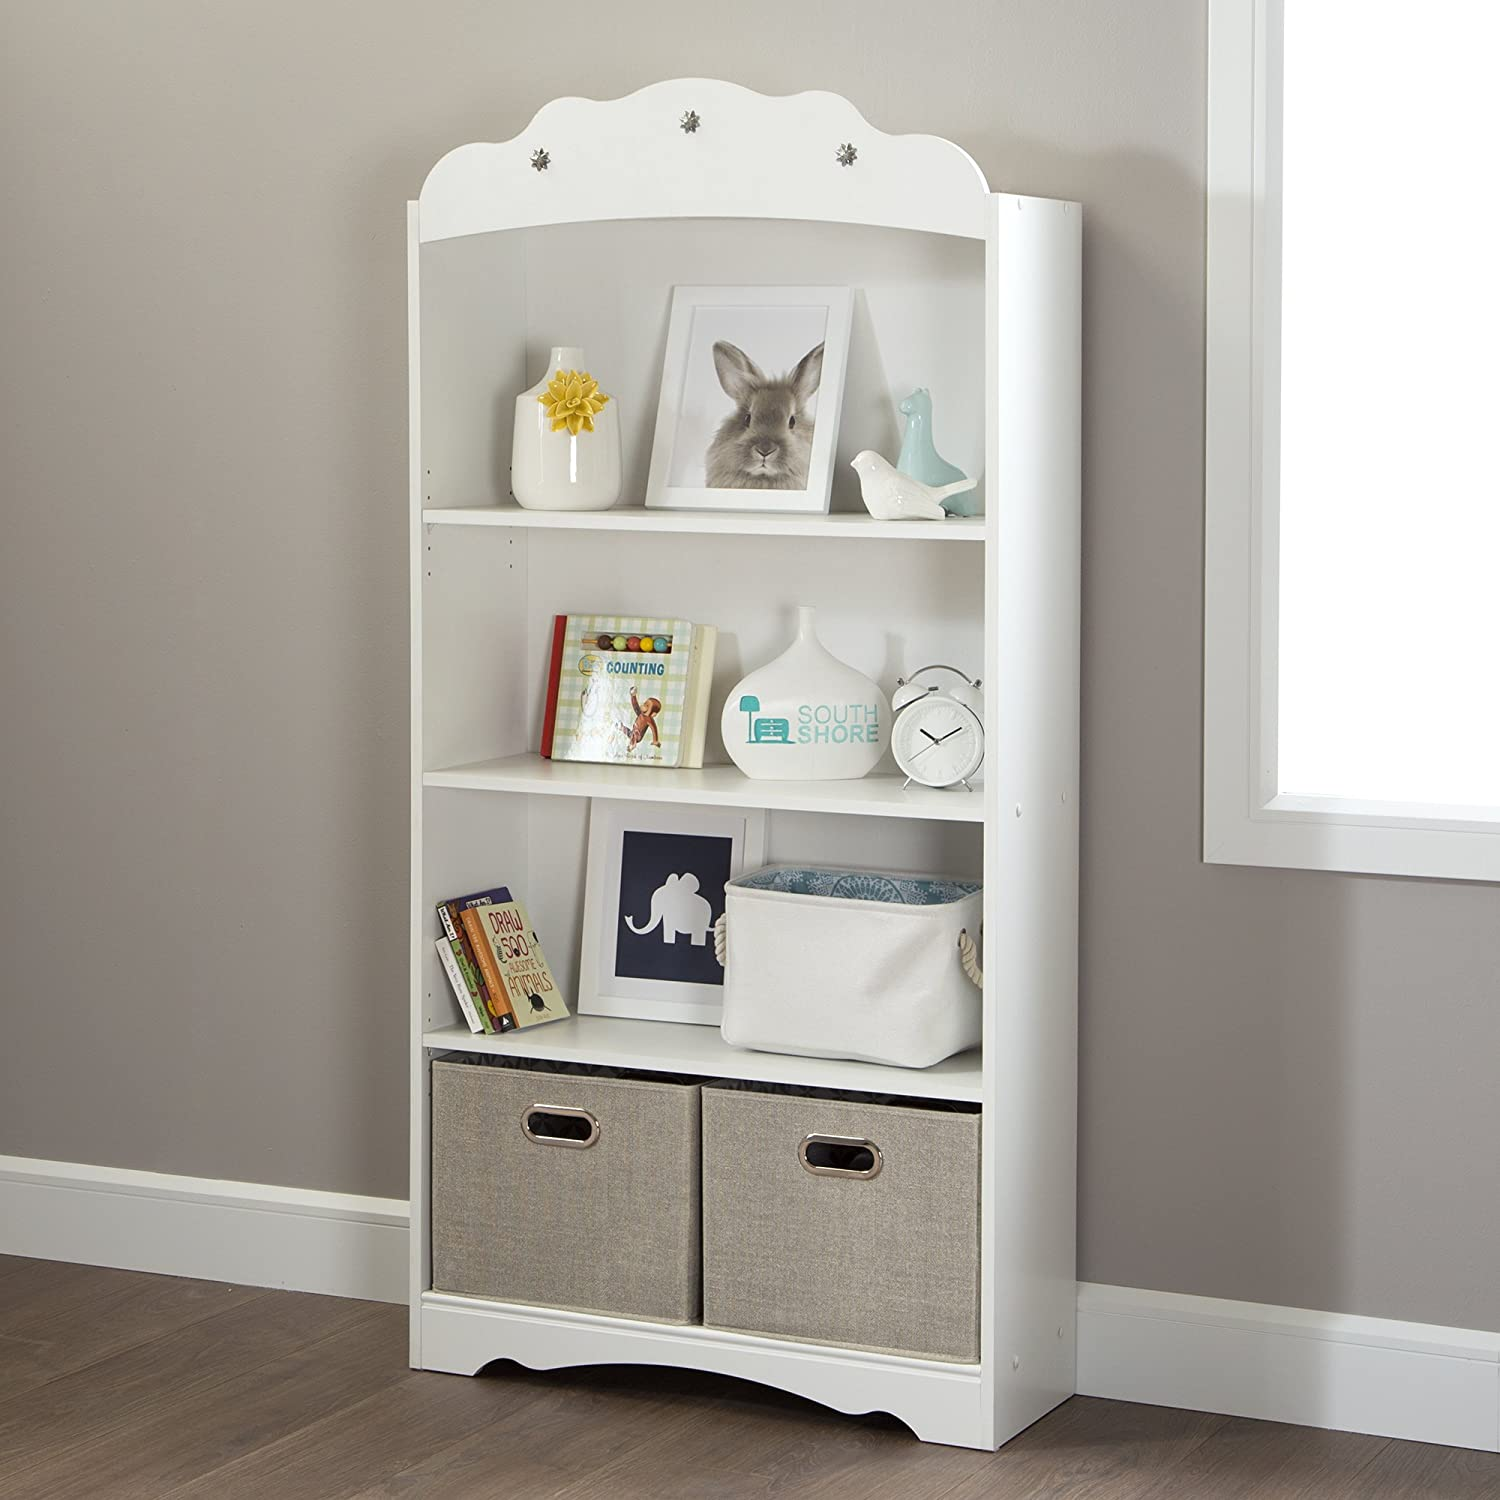 Amazon.com: South Shore Tiara 4 Shelf Bookcase, Pure White: Kitchen U0026 Dining